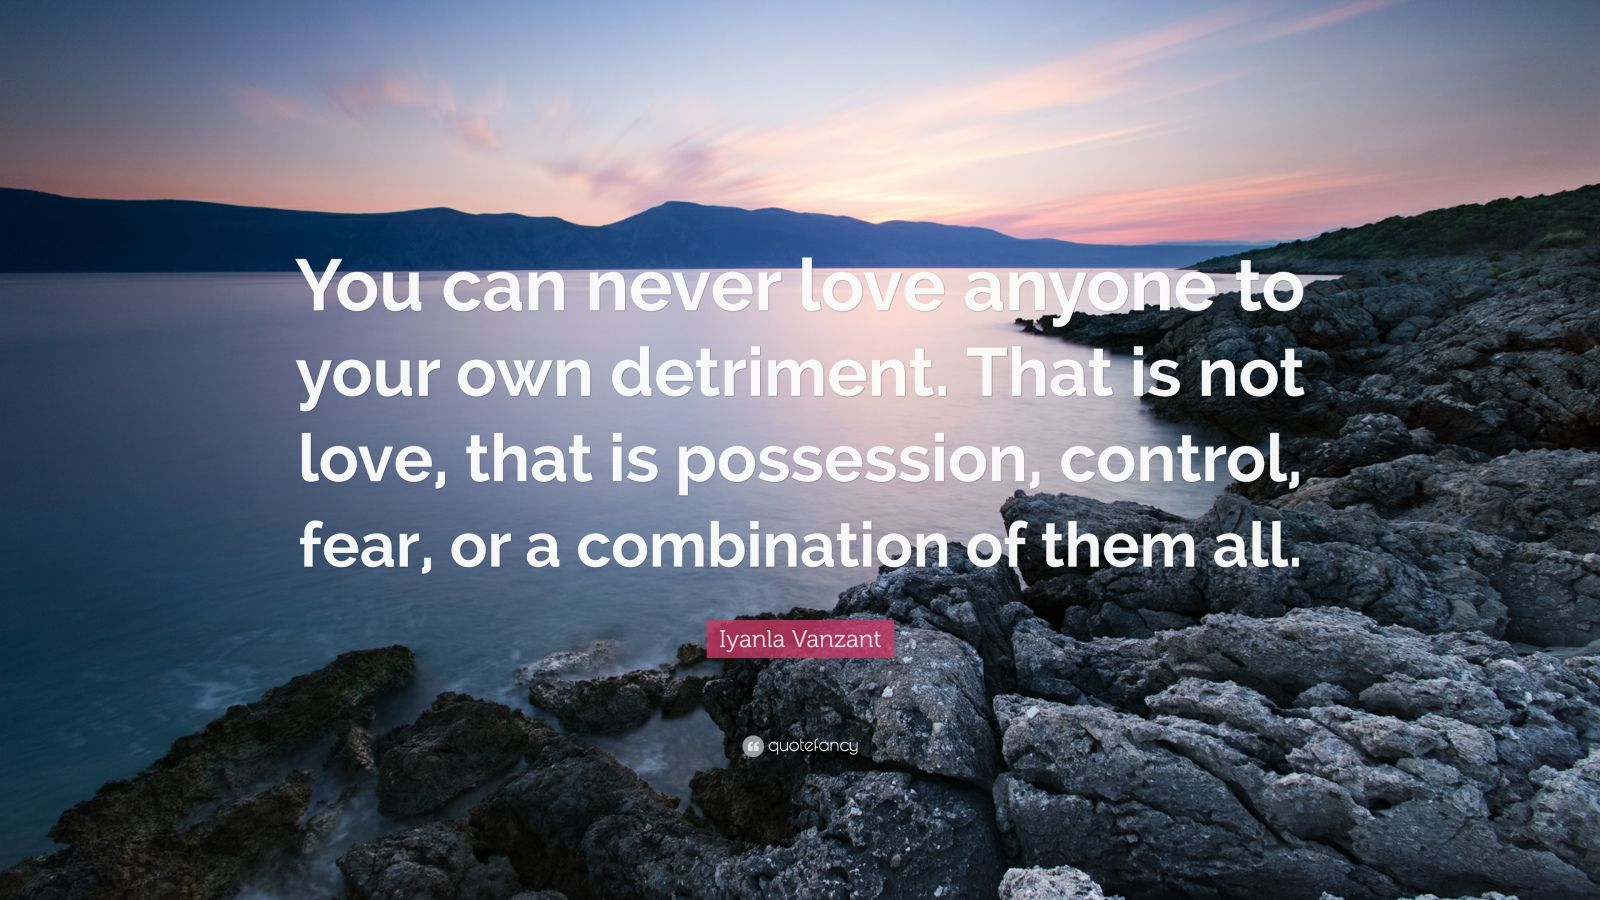 "Iyanla Vanzant Quote: ""You can never love anyone to your own detriment. That is not love, that is possession, control, fear, or a combination of them all."""